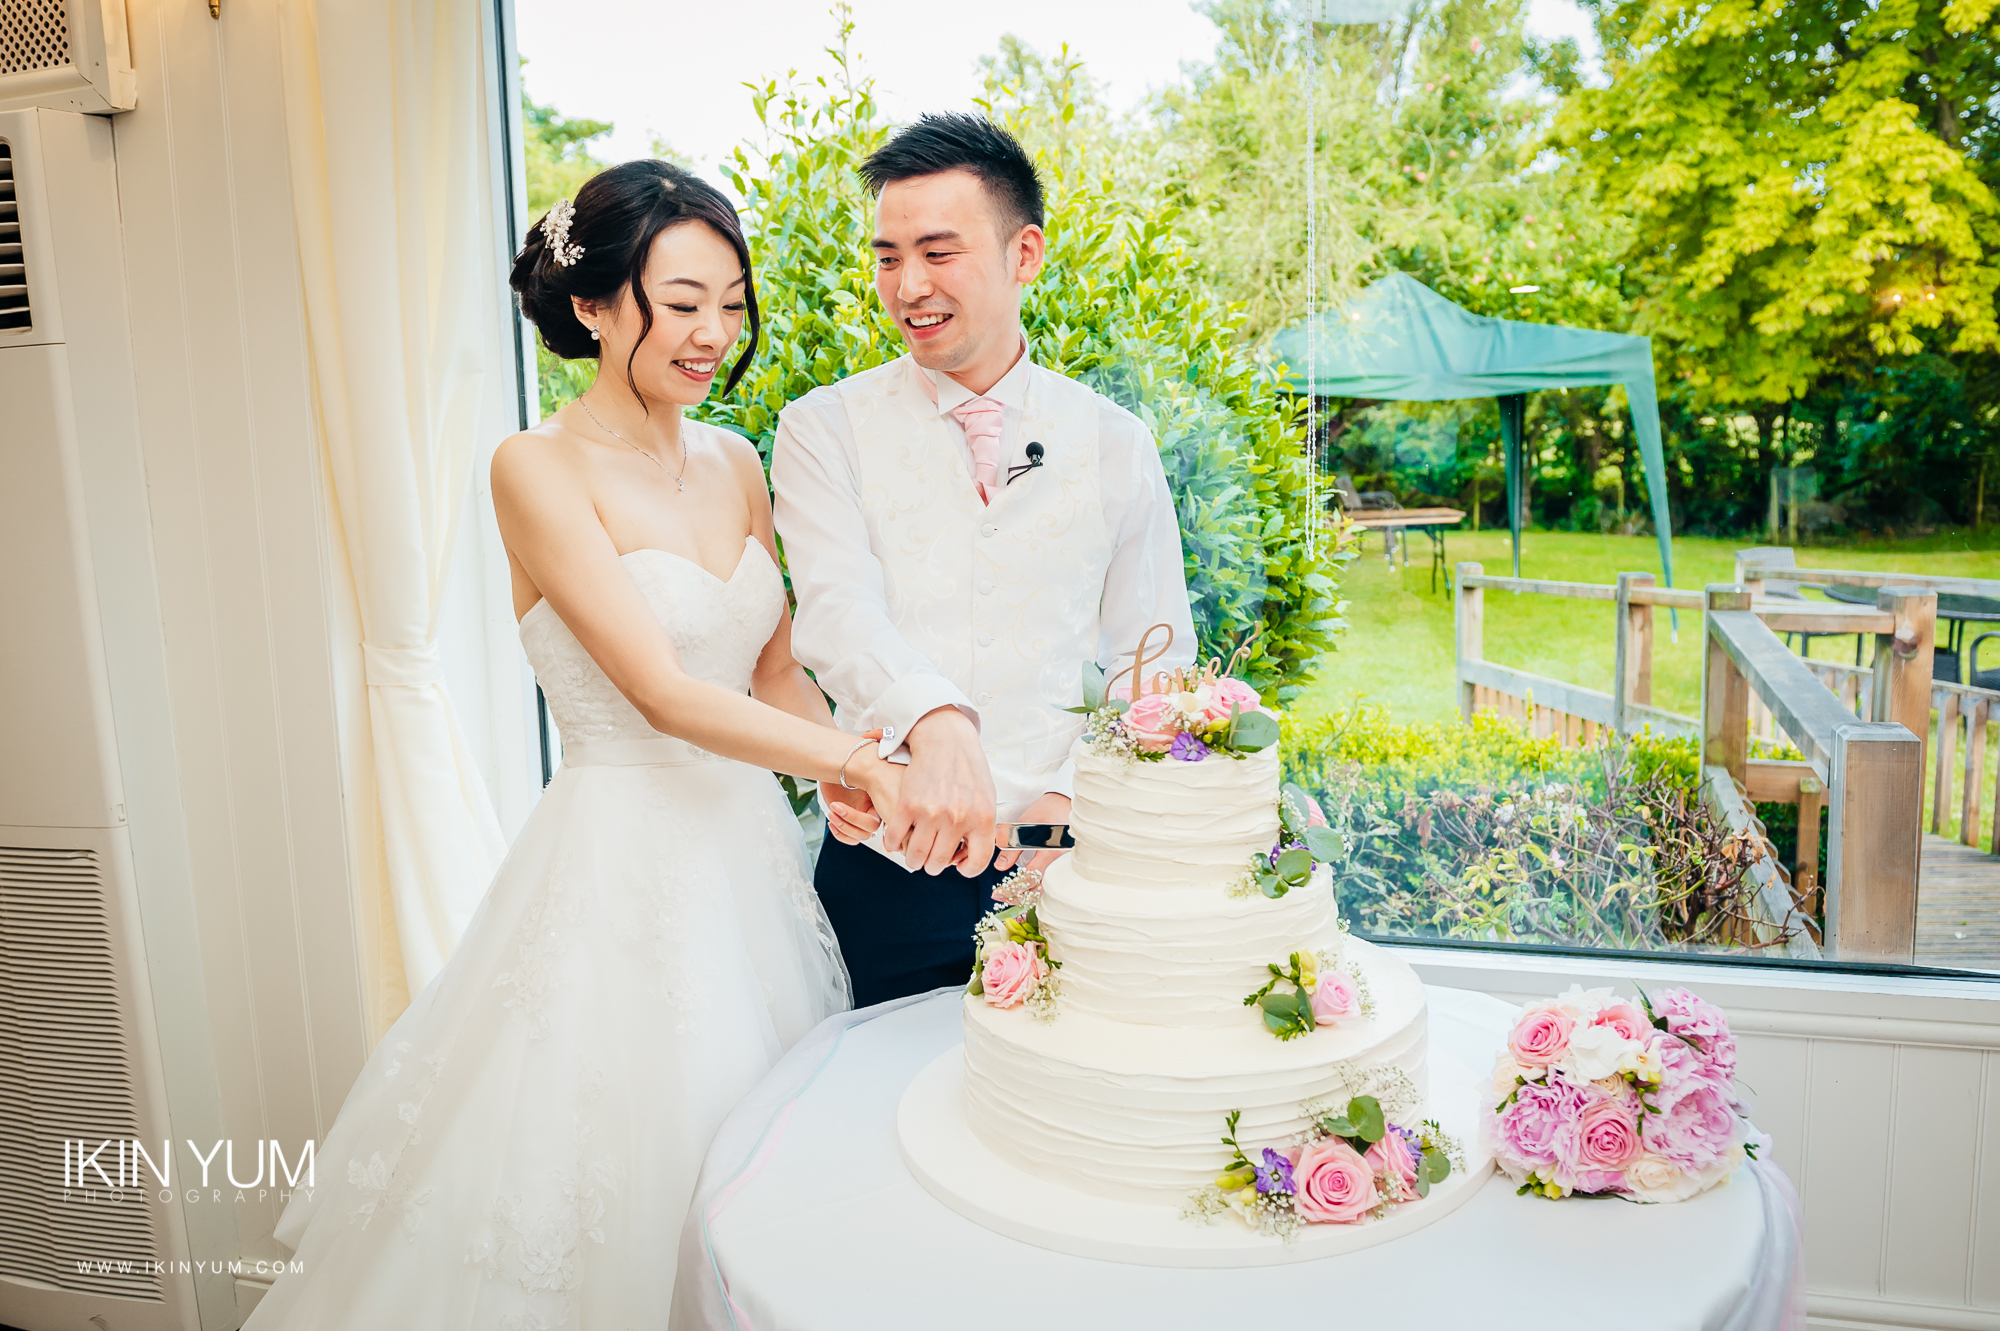 Sylvianne & Chun Wedding Day - Ikin Yum Photography-112.jpg